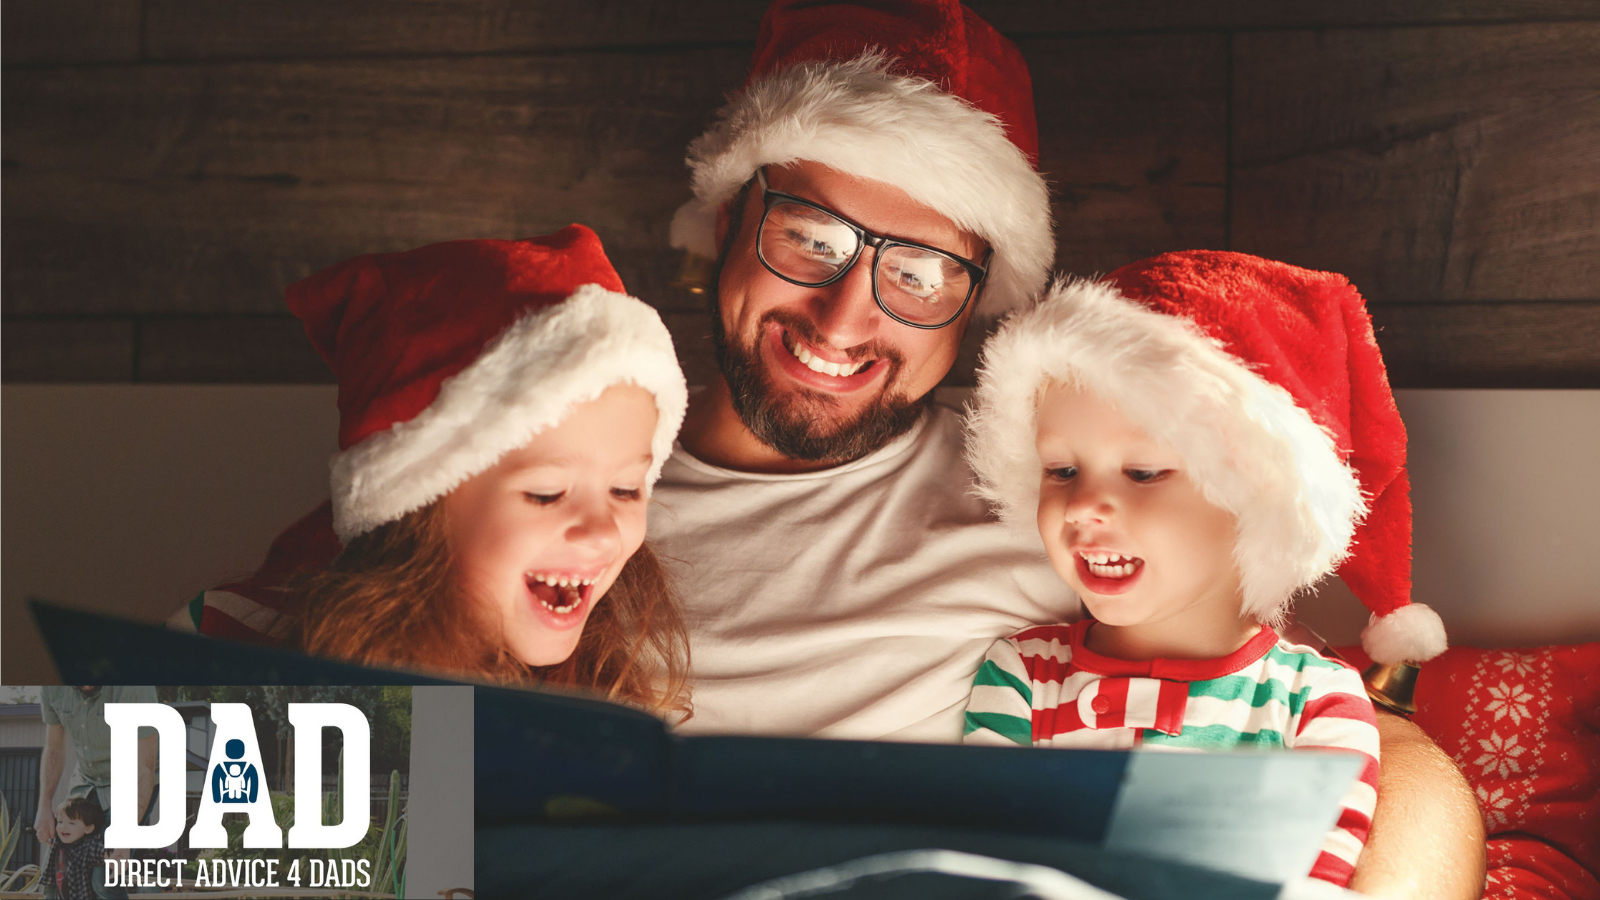 How to deal with Christmas as a single dad